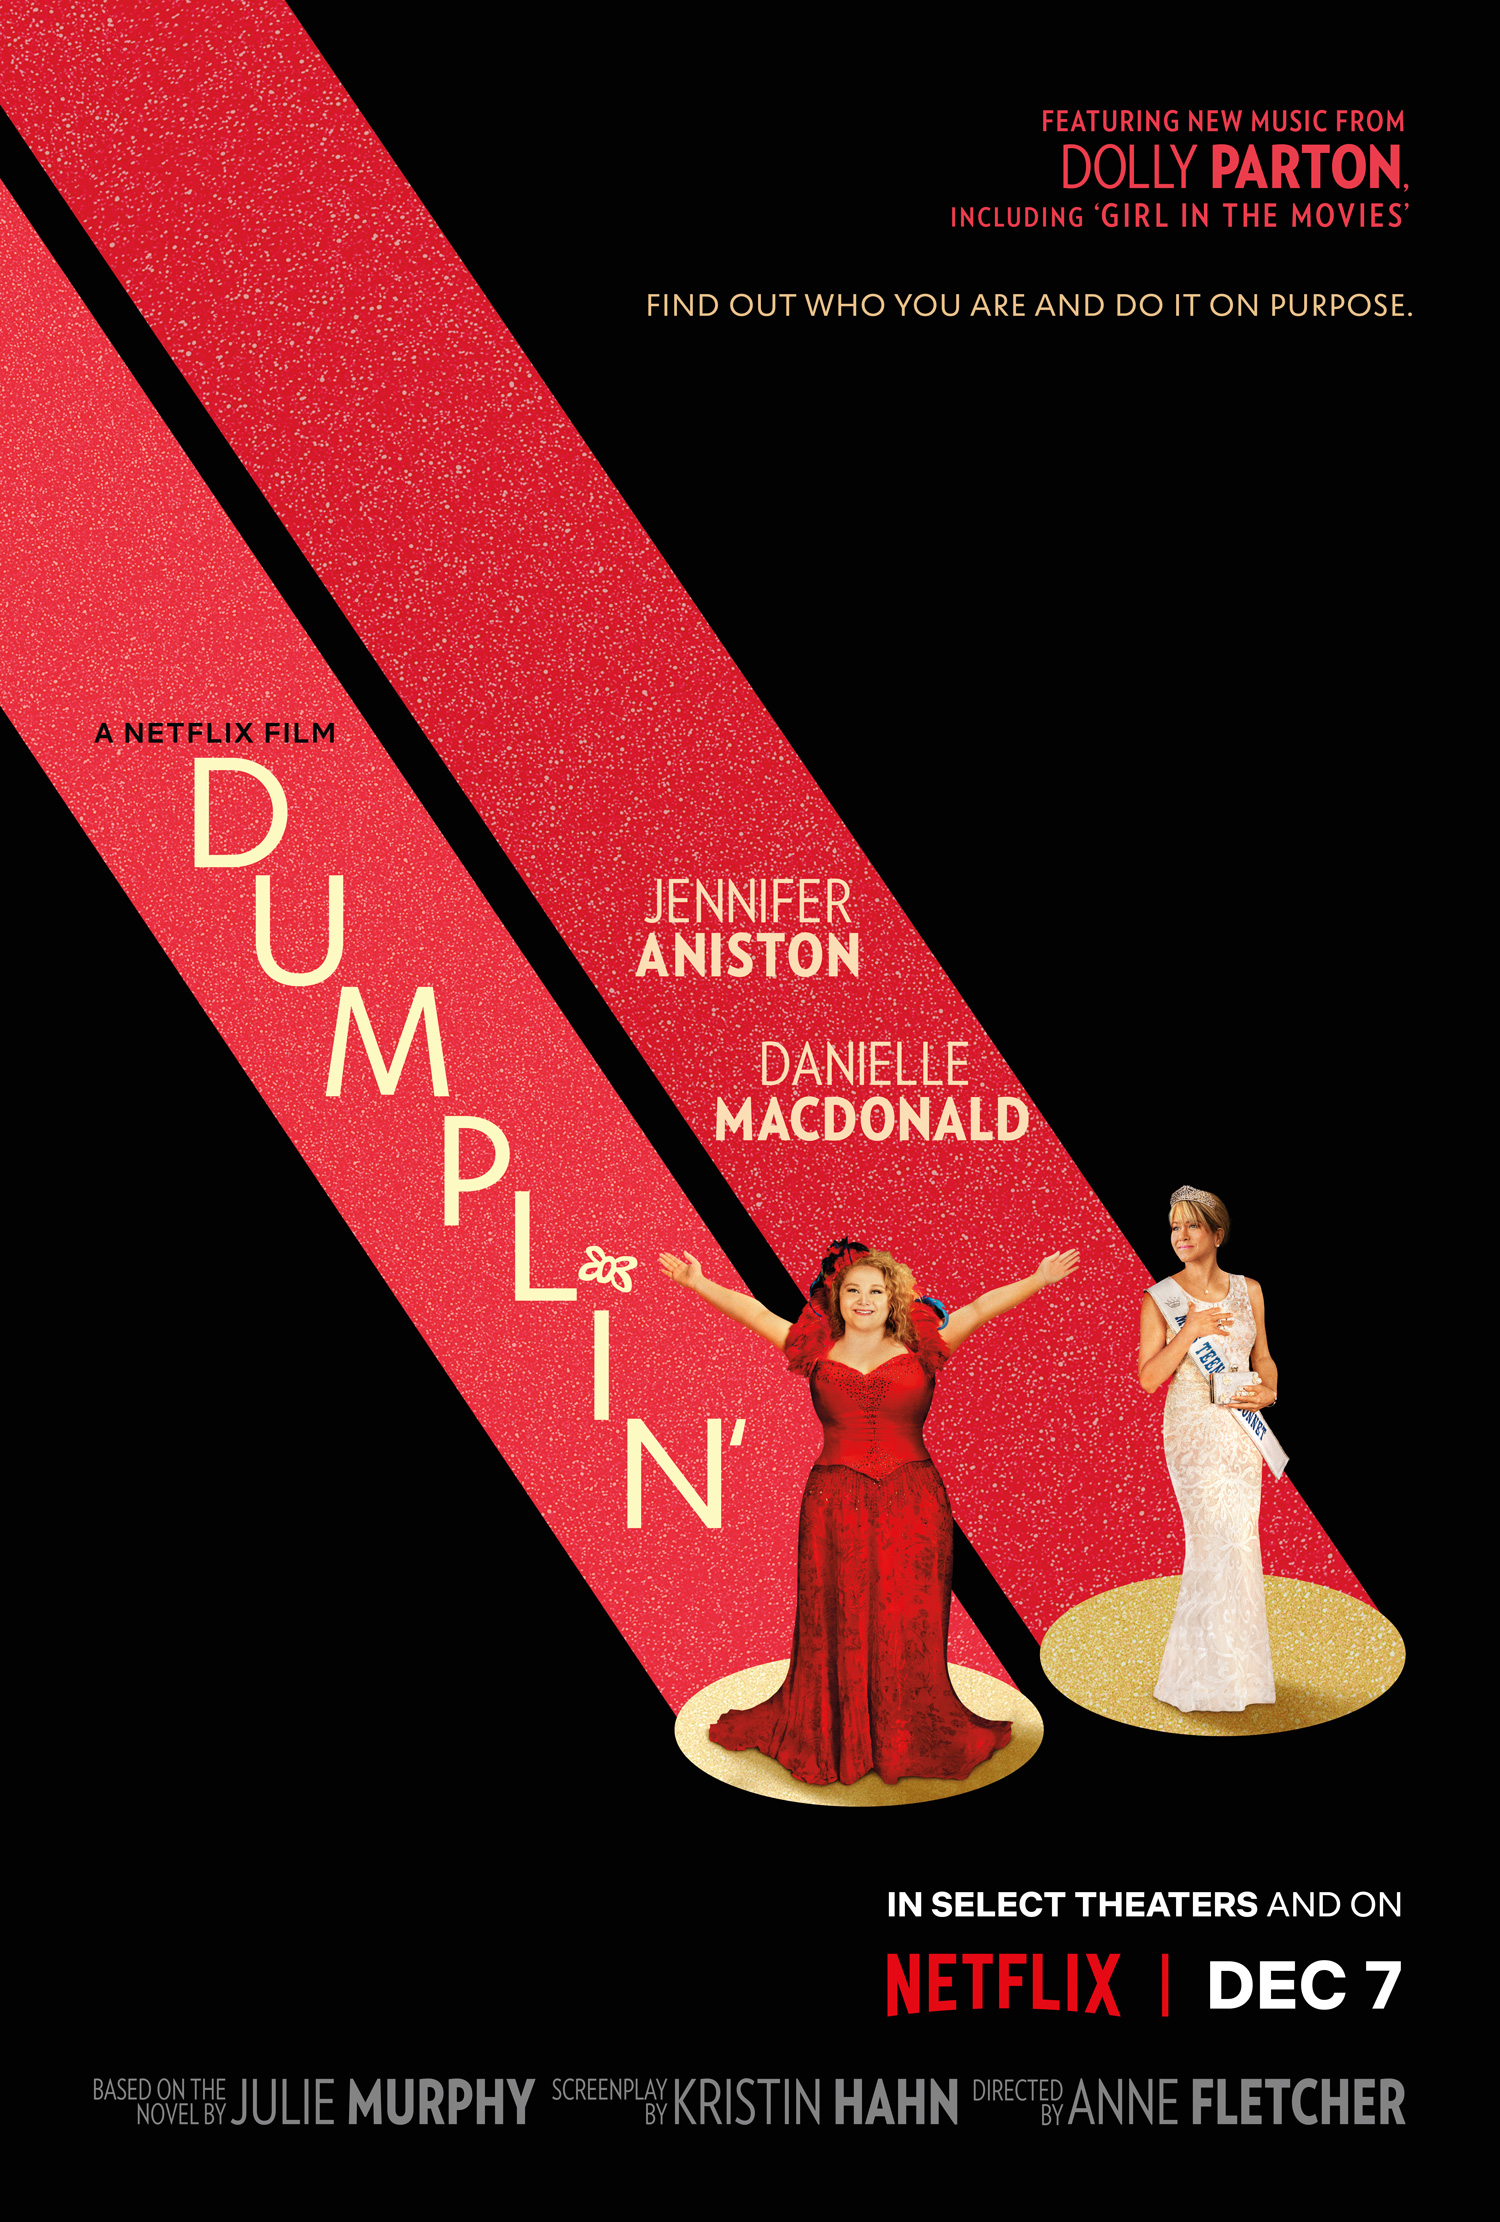 MISS XL (2018) / Dumplin